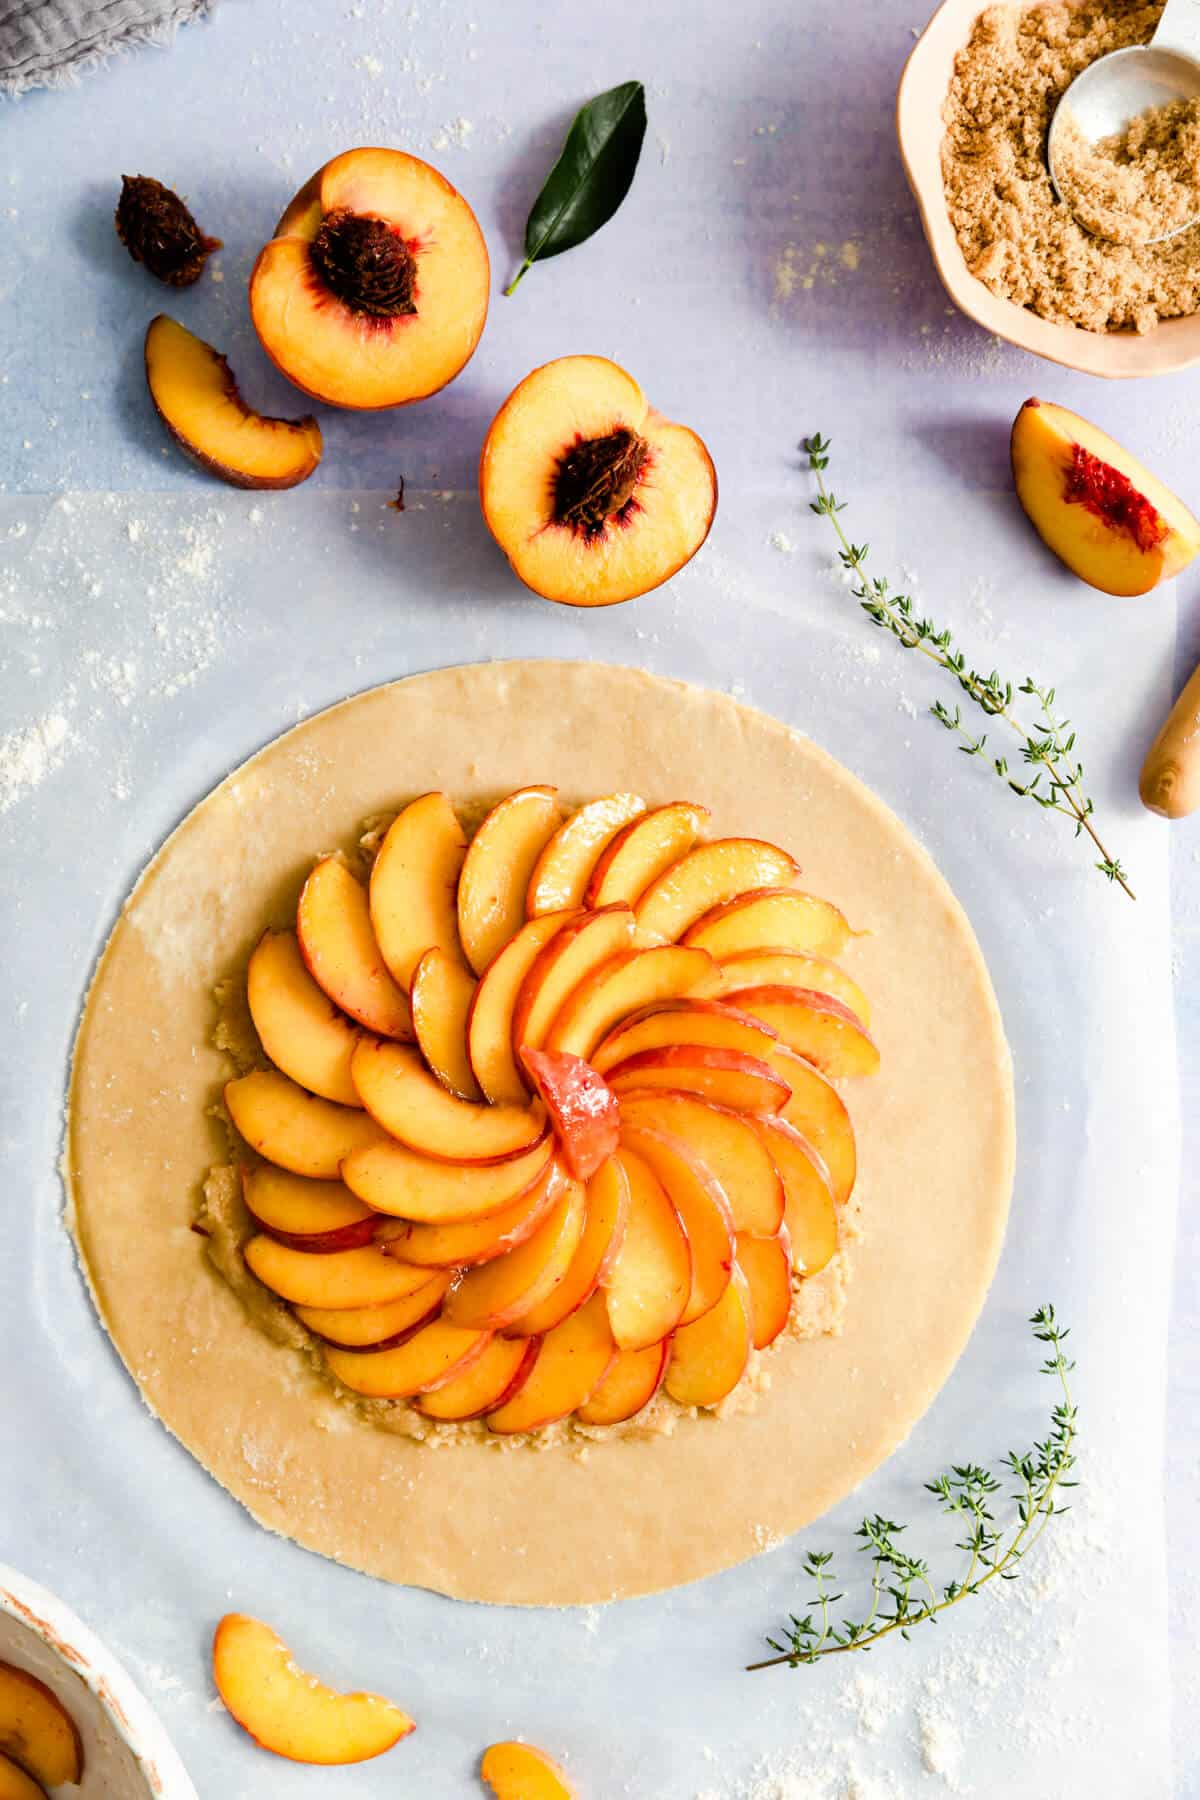 top view of large circle of dough topped with sliced peaches